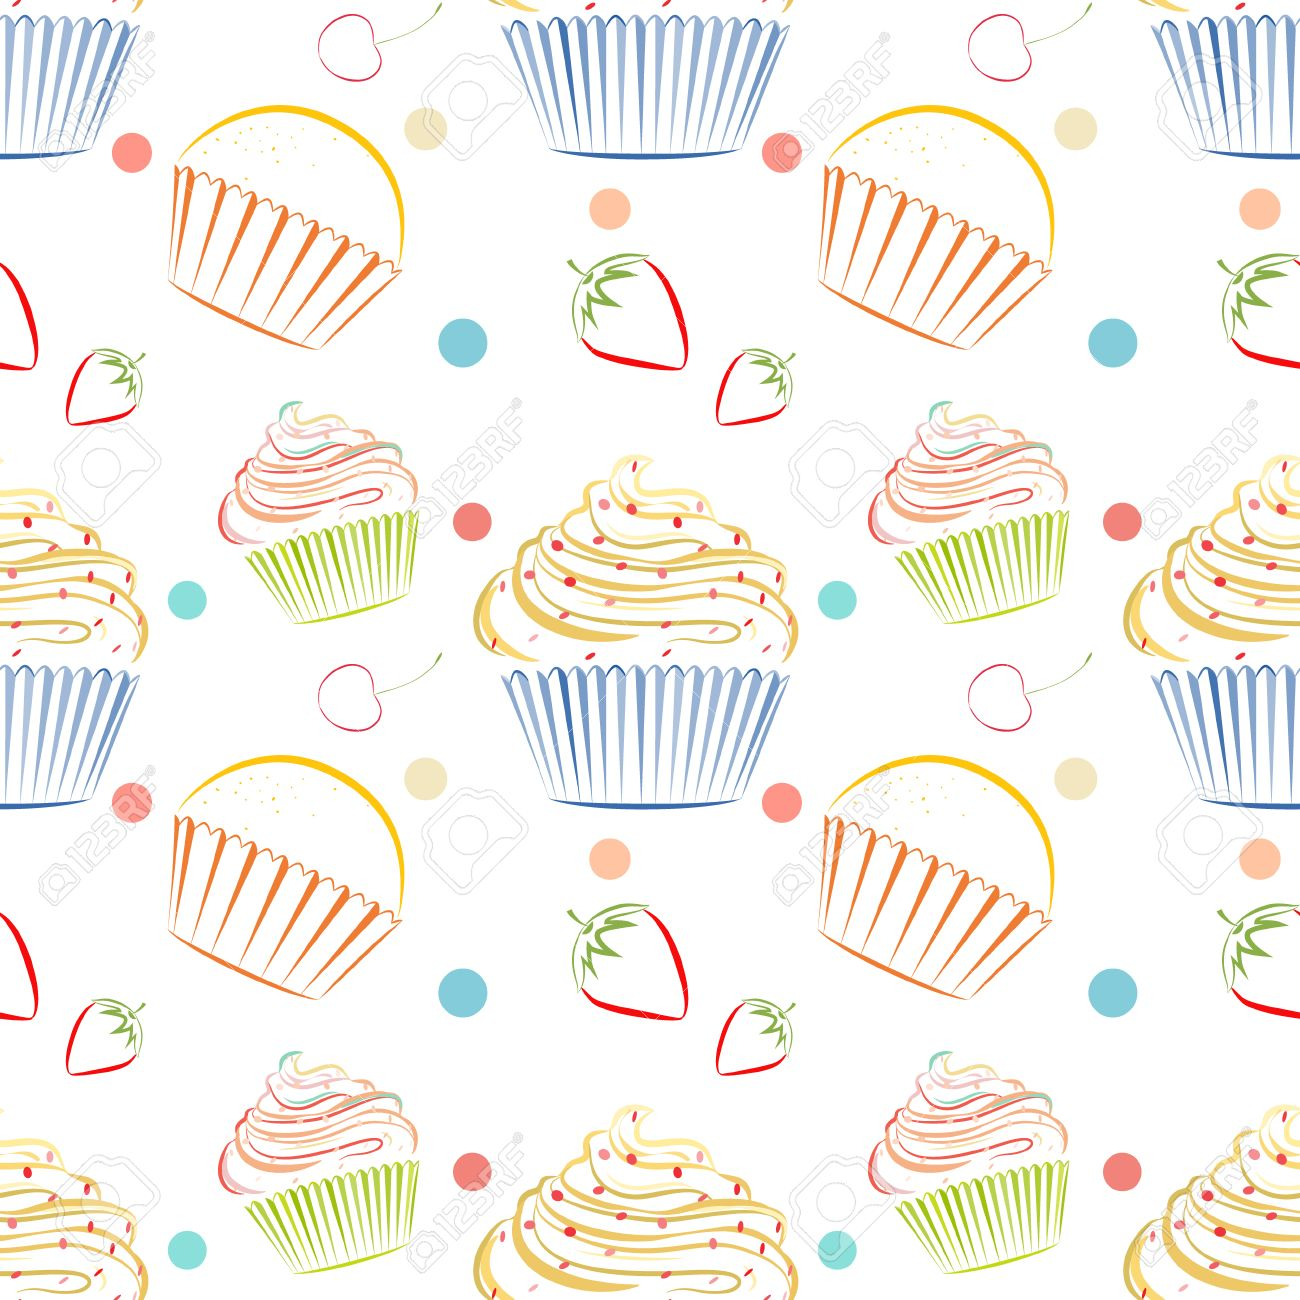 Charmant Kitchen Themed Wallpaper. Elegant Vector Seamless Pattern With Different  Cupcakes. Unique Doodle Style Line Drawing Food Background With